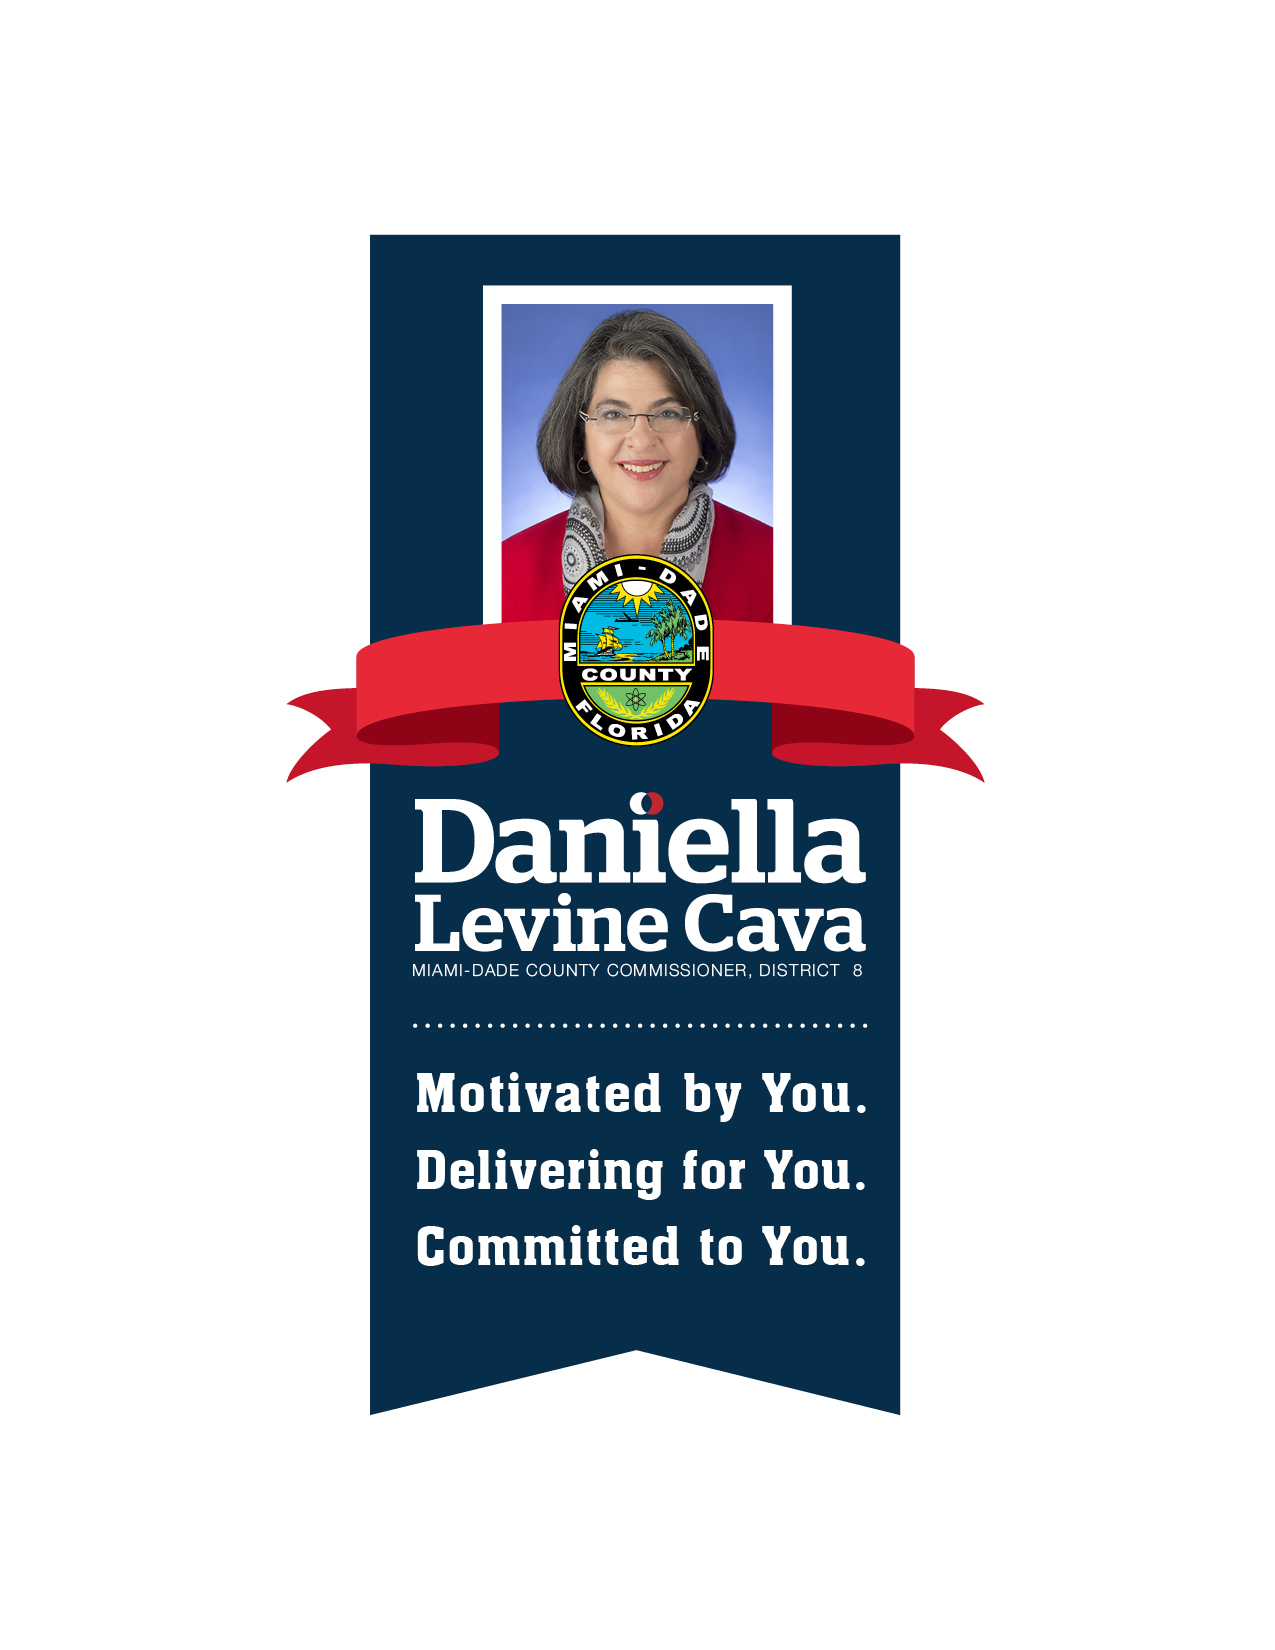 Daniella Levine-Cava, Miami-Dade Commissioner District 8